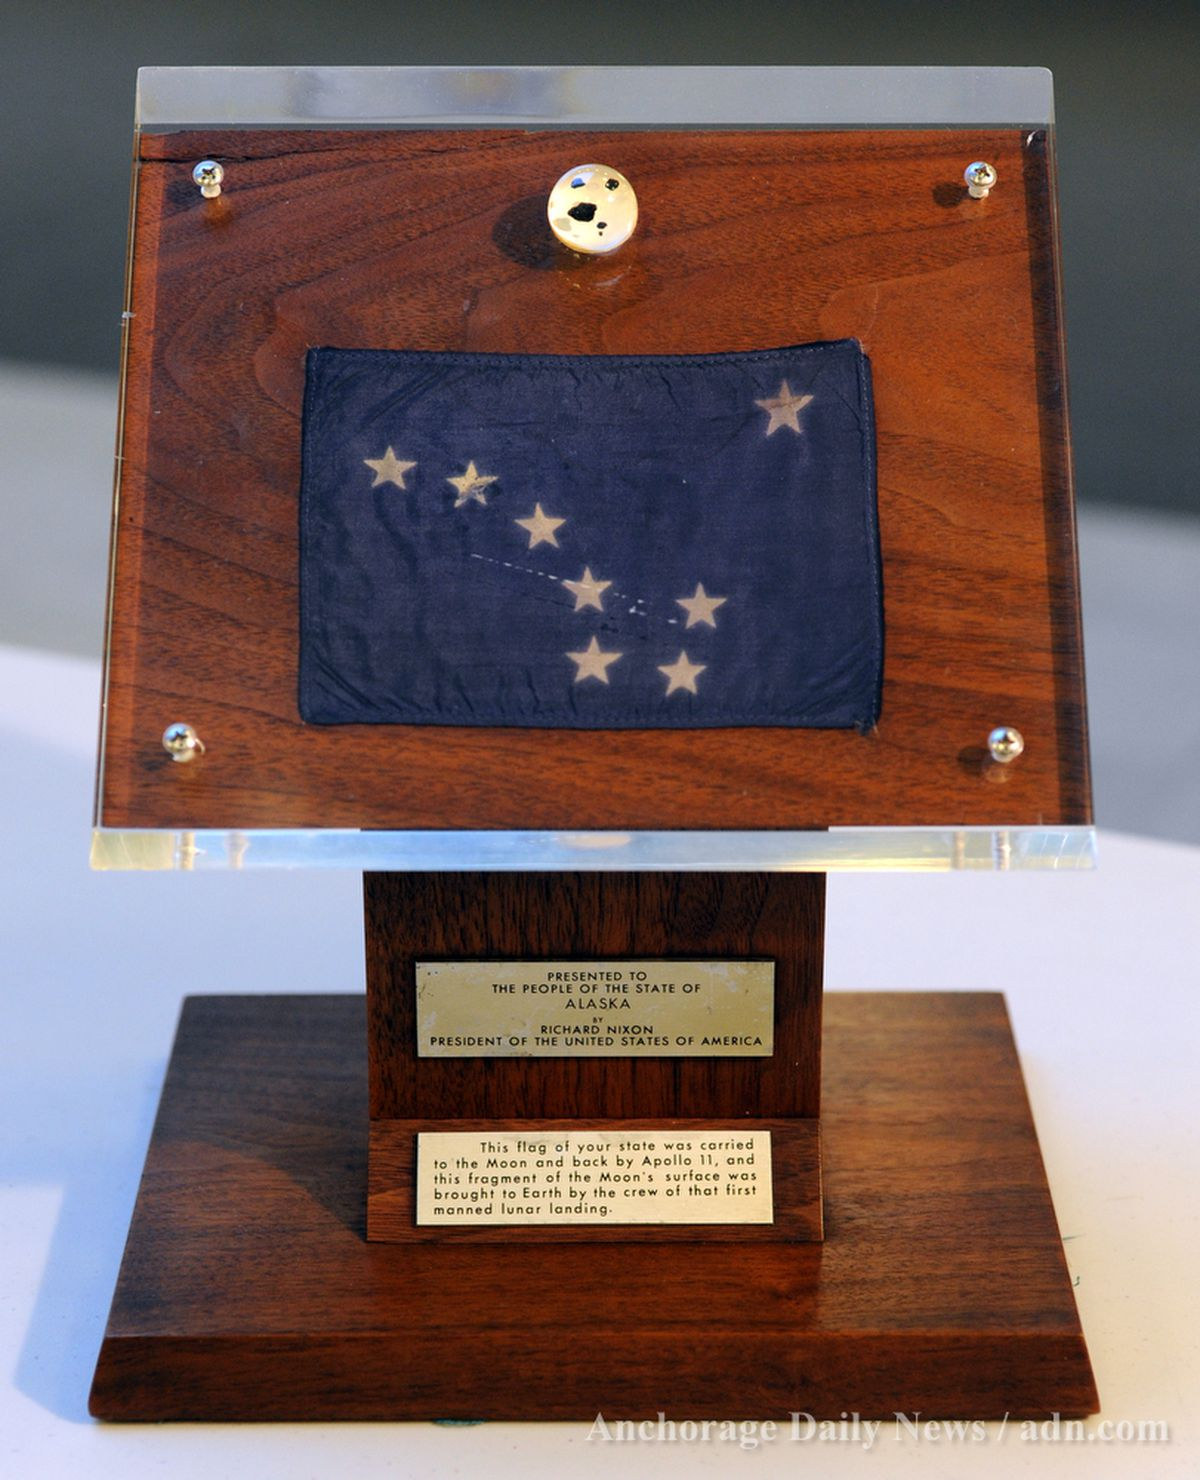 Tiny fragments of moon rock were accompanied by a state flag in the plaque presented by President Richard Nixon to Gov. Keith Miller in 1969. The plaque and rocks disappeared following a 1973 fire at the Alaska Transportation Museum in Anchorage, and were displayed again to Alaskans upon their overnight return to the state Thursday Dec. 6, 2012 at the Anchorage School District administration building.